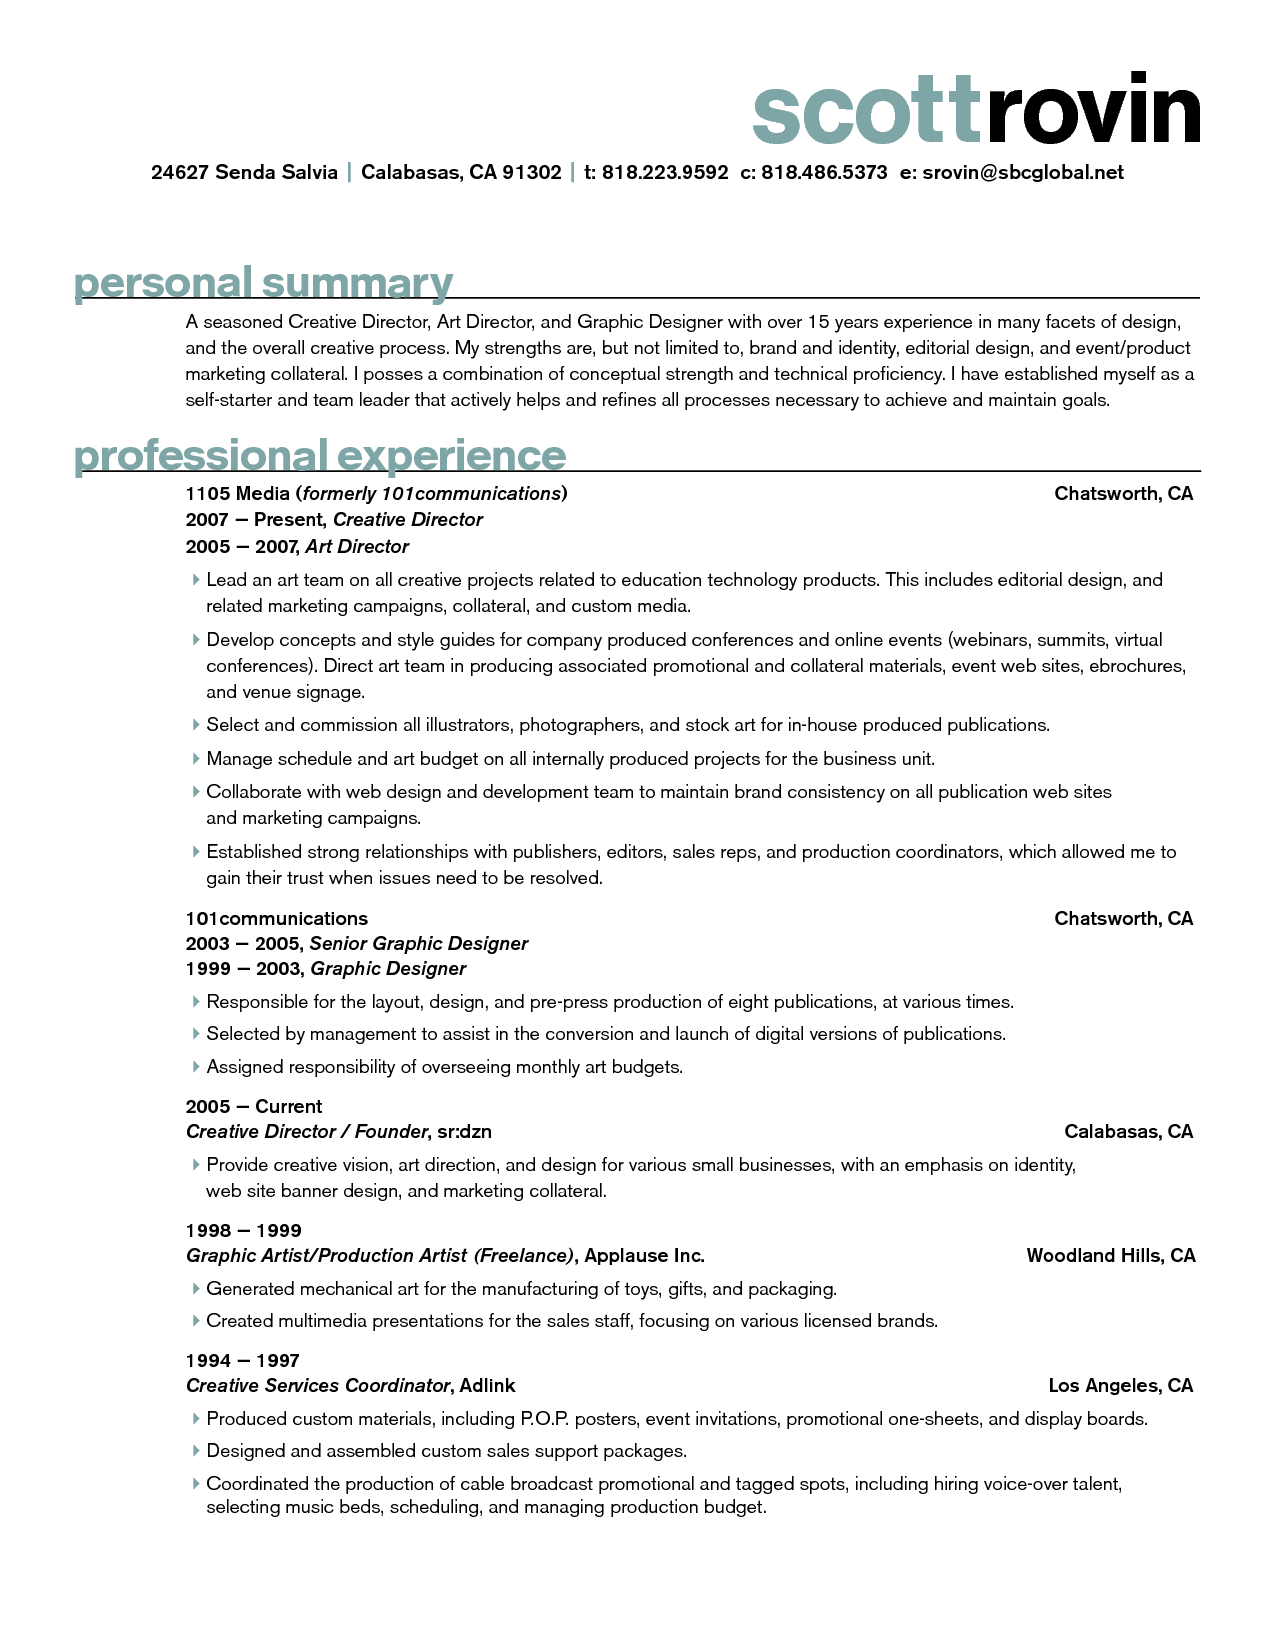 Creative Graphic Design Resumes | Server Error  Senior Graphic Designer Resume